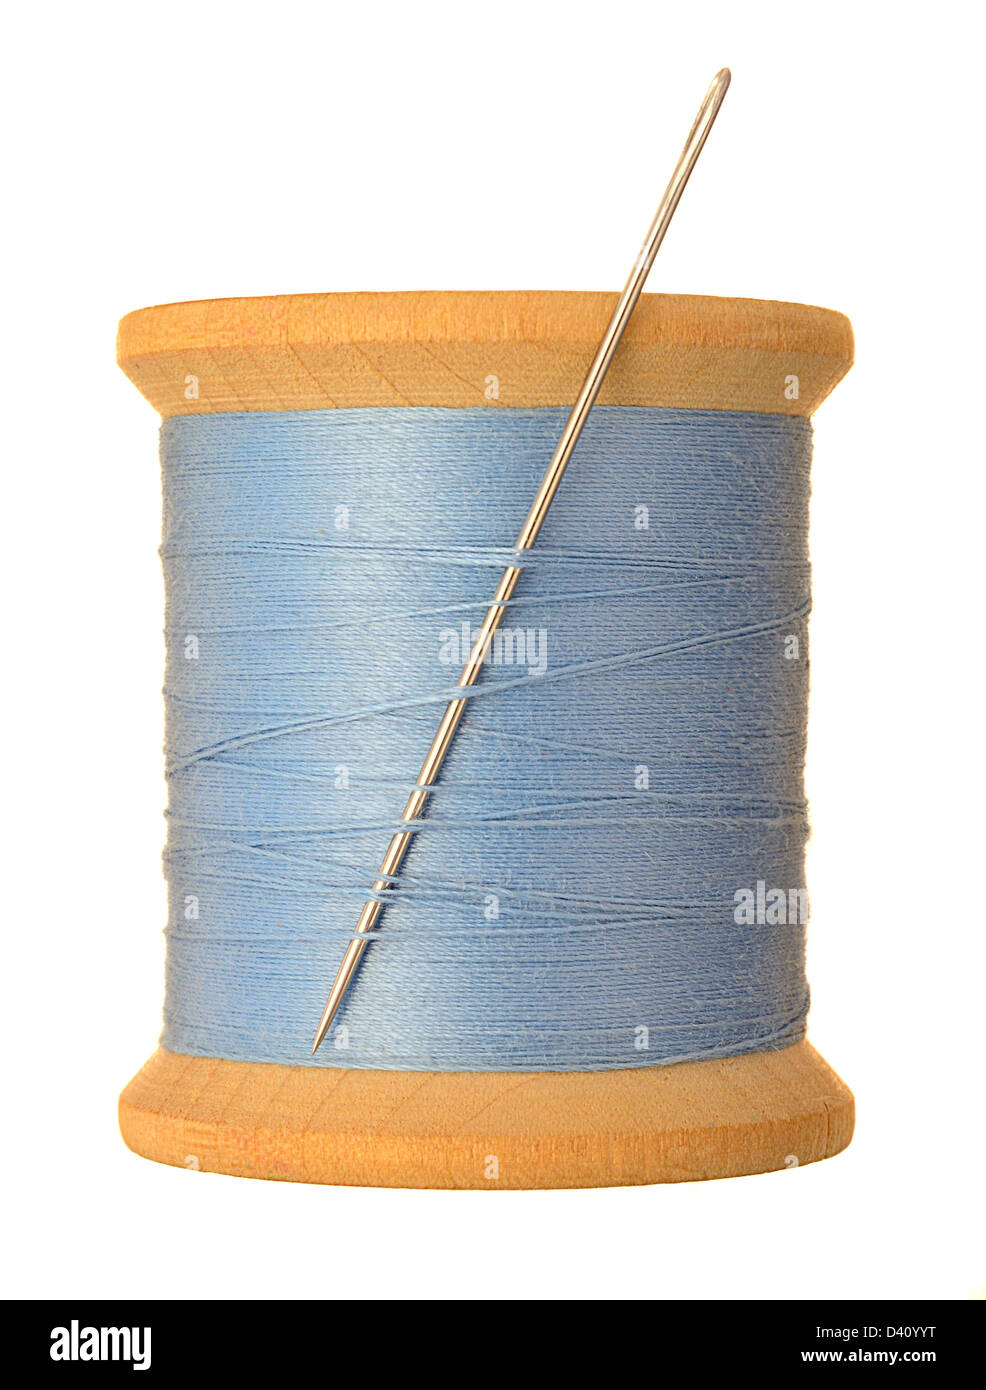 needle and thread - spool of blue thread and sewing needle - Stock Image